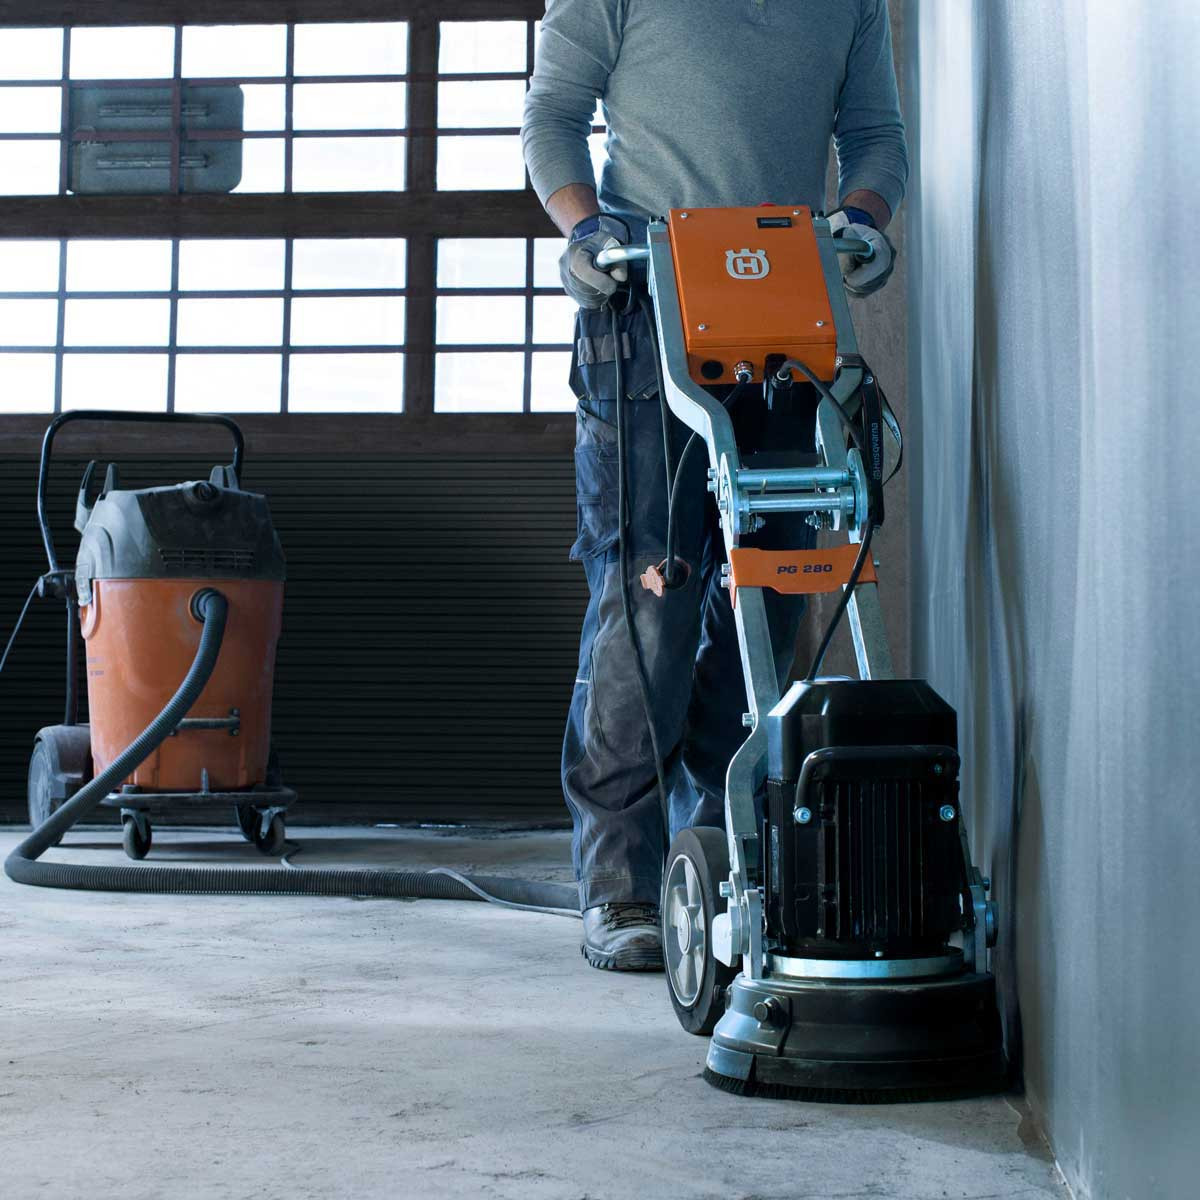 Husqvarna PG 280 wall edger action